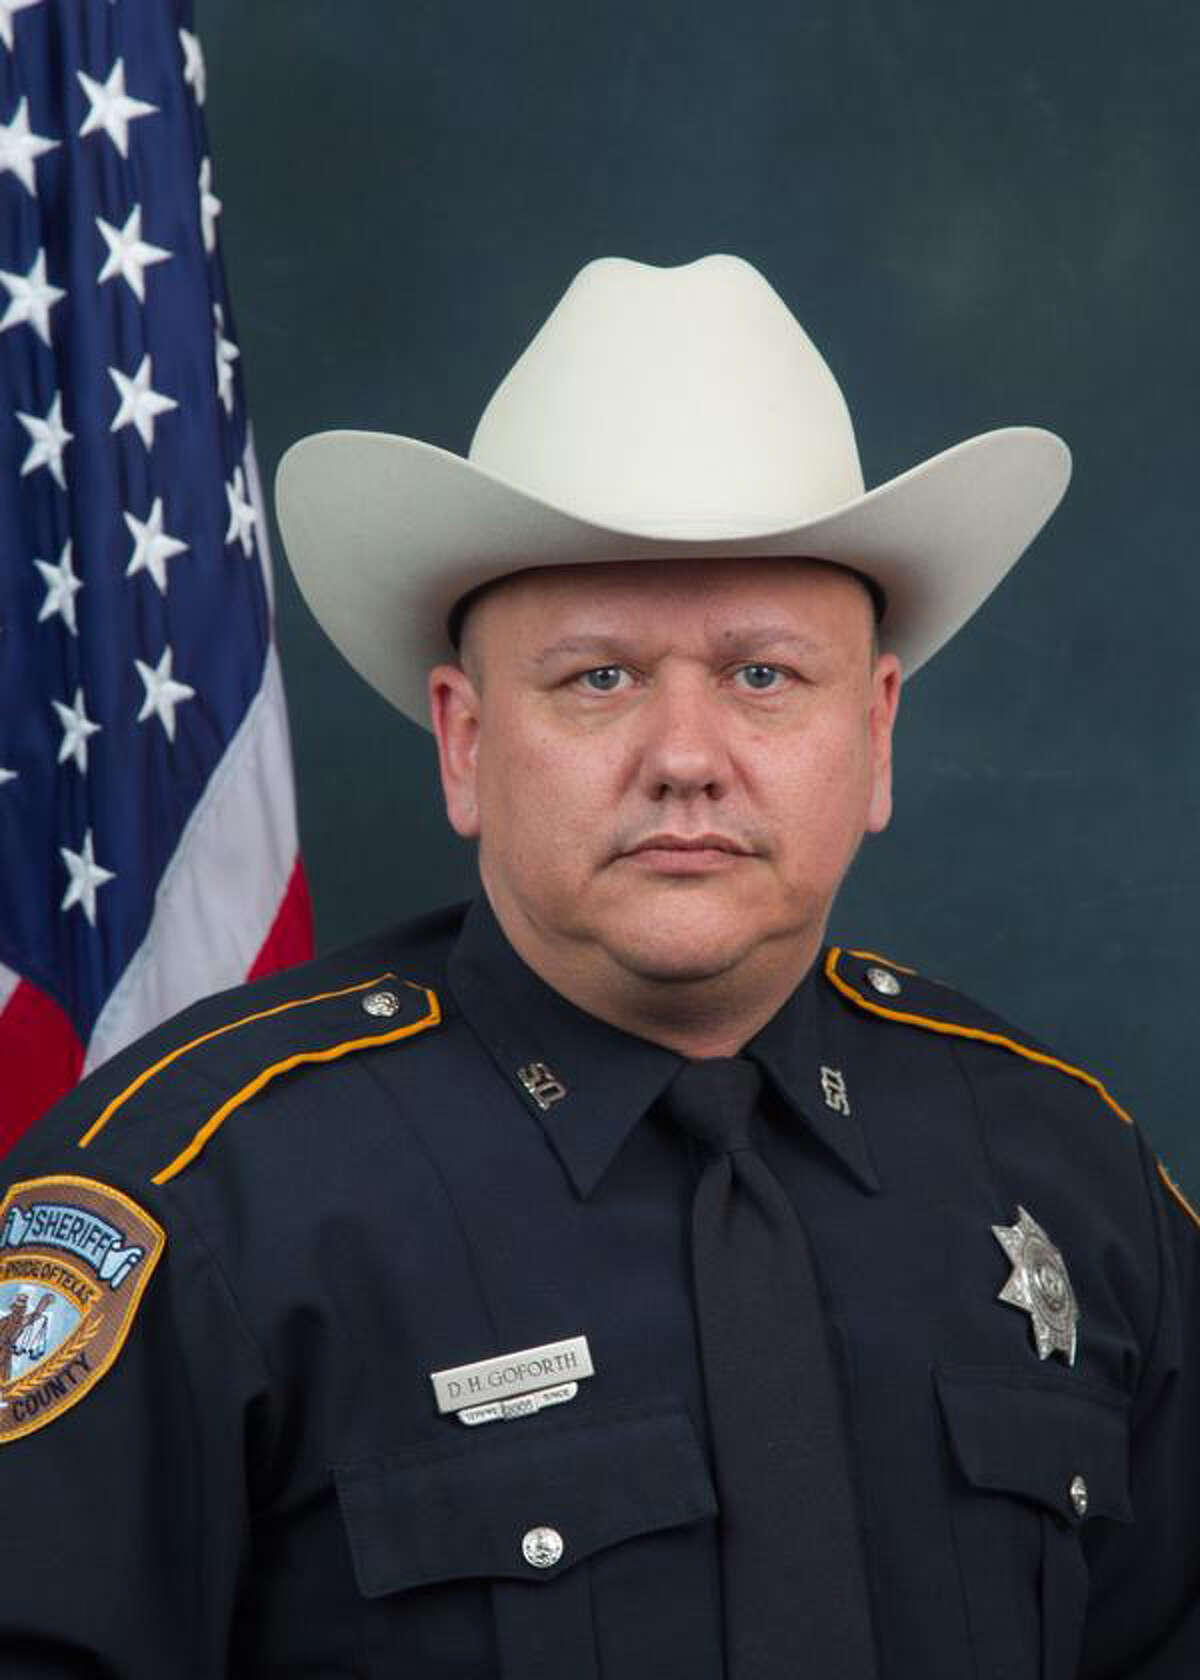 Harris County deputy Darren H. Goforth, 47, a 10-year department veteran was shot and killed at Chevron station on Friday night at Telge and West roads. Officials say the deputy was shot from behind and died at the scene.